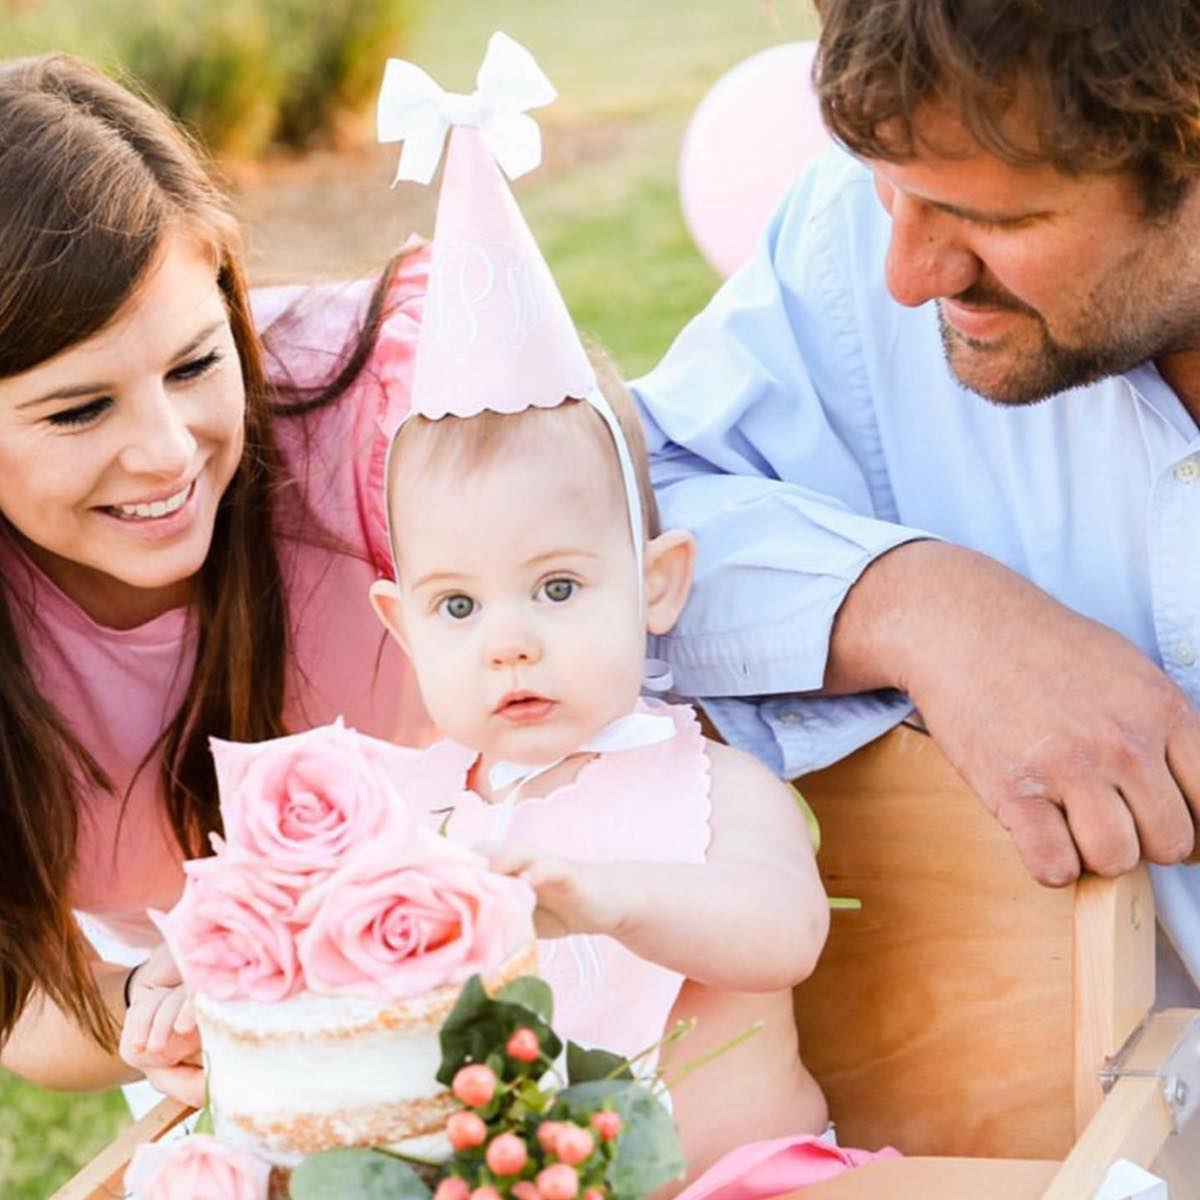 two parents and their child celebrating a birthday with a rose birthday cake